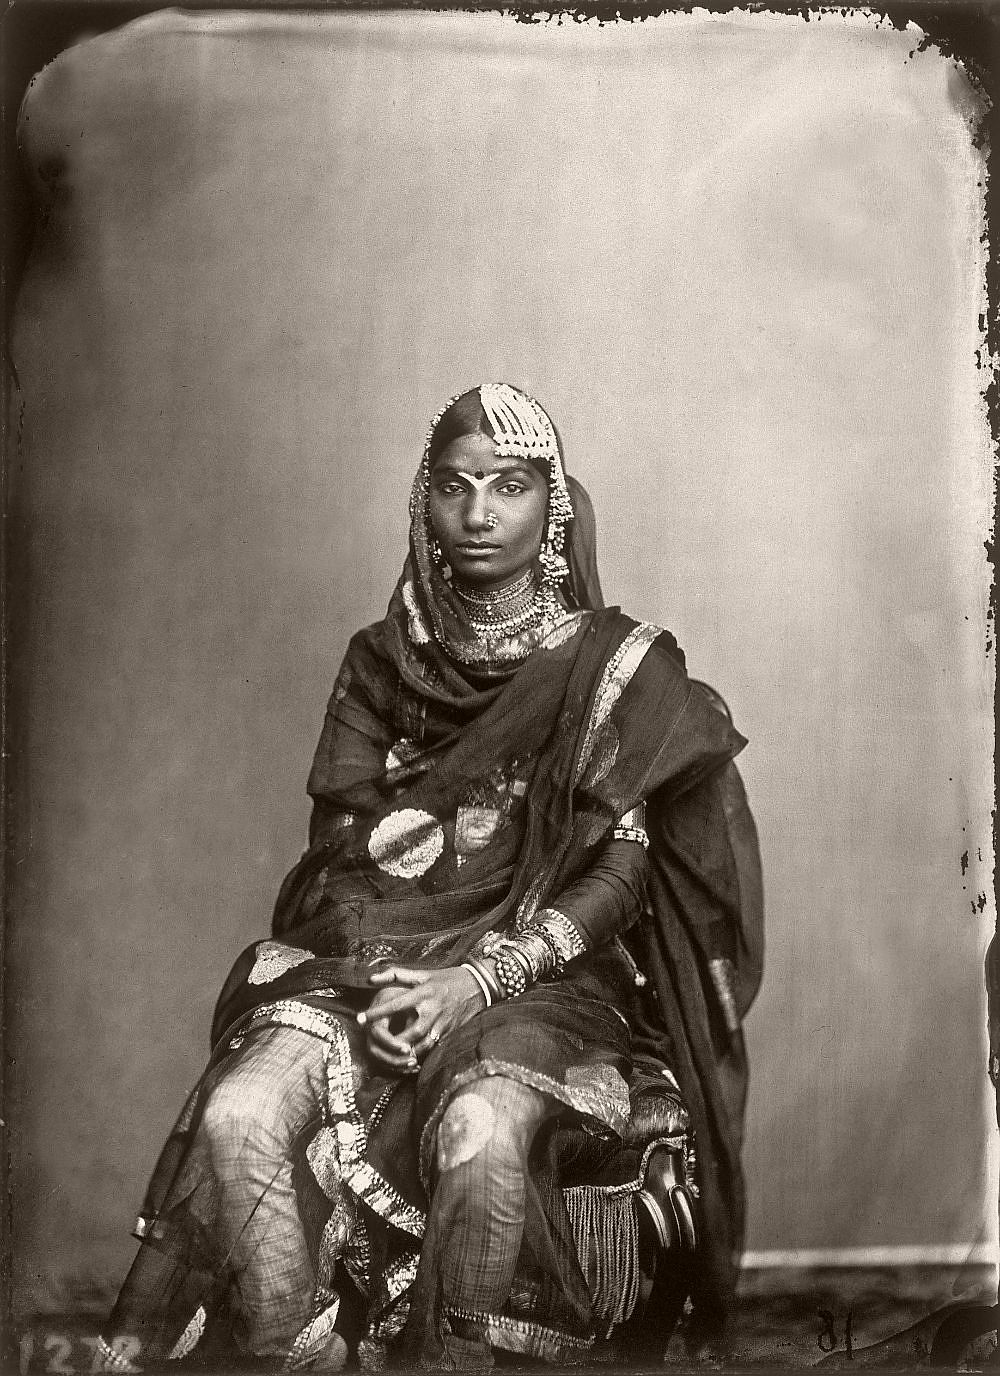 Portrait of a woman in the harem of the royal palace of Jaipur, India, 1857–1865. (Photo by Maharaja Ram Singh III/Alinari via Getty Images)